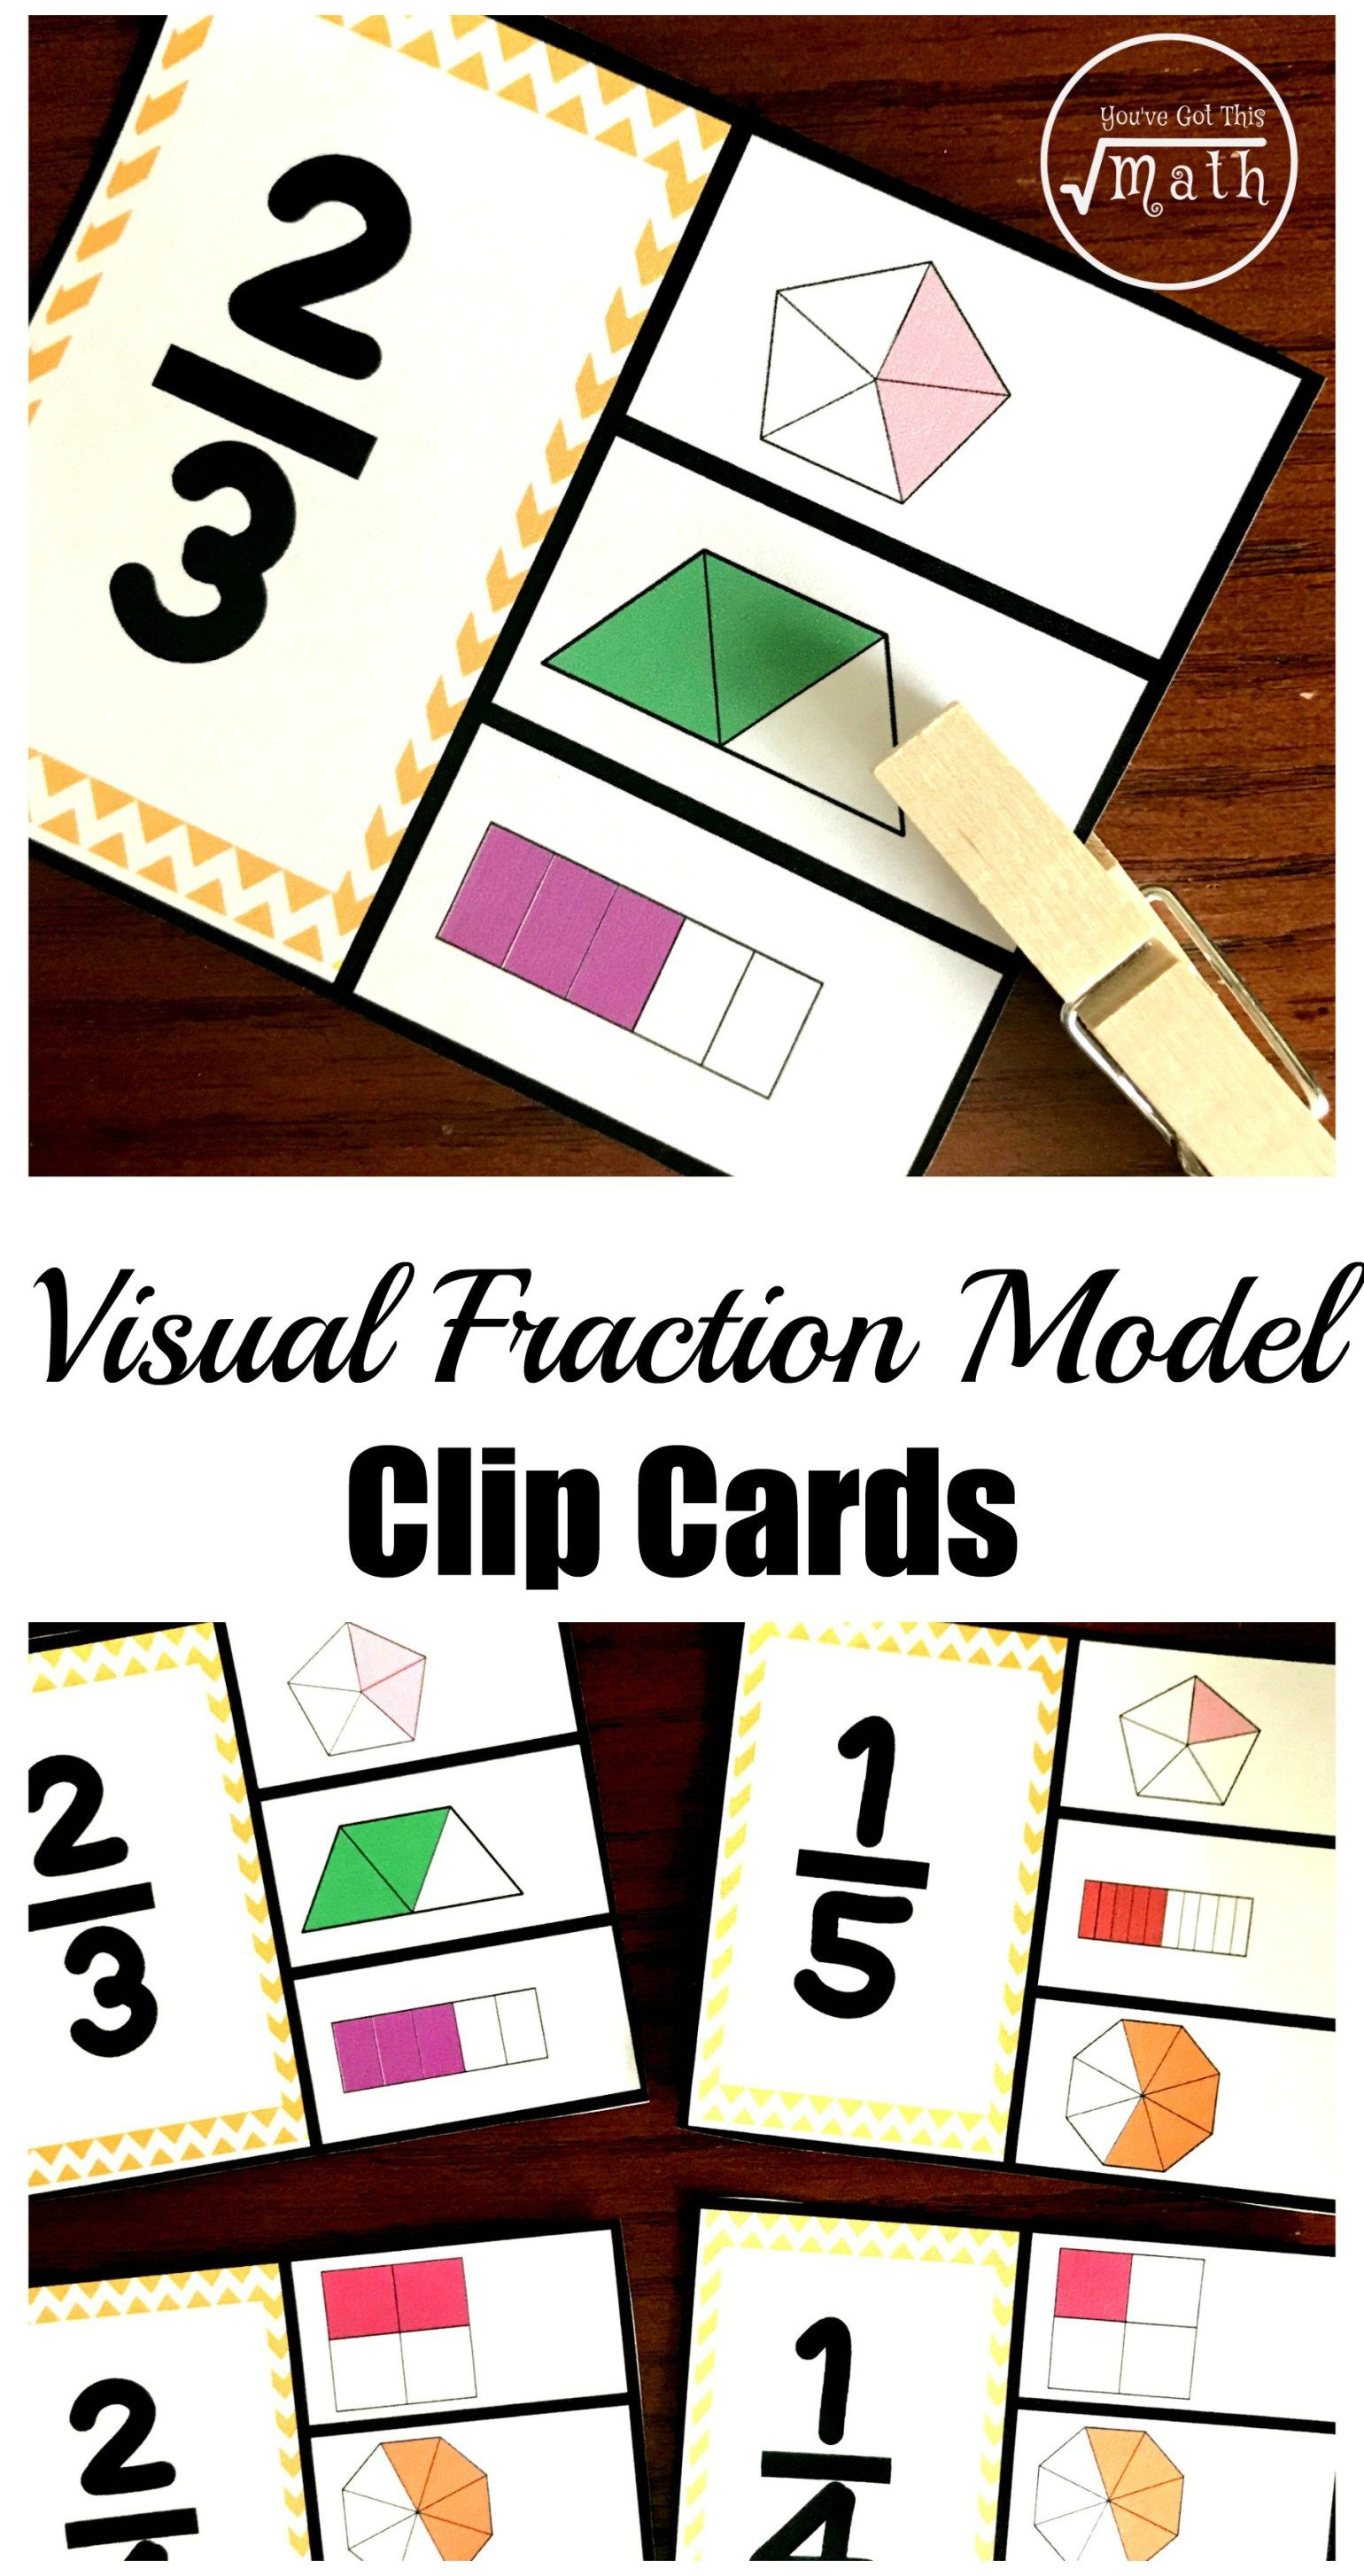 Free Visual Fraction Model Clip Cards To Assess Fraction